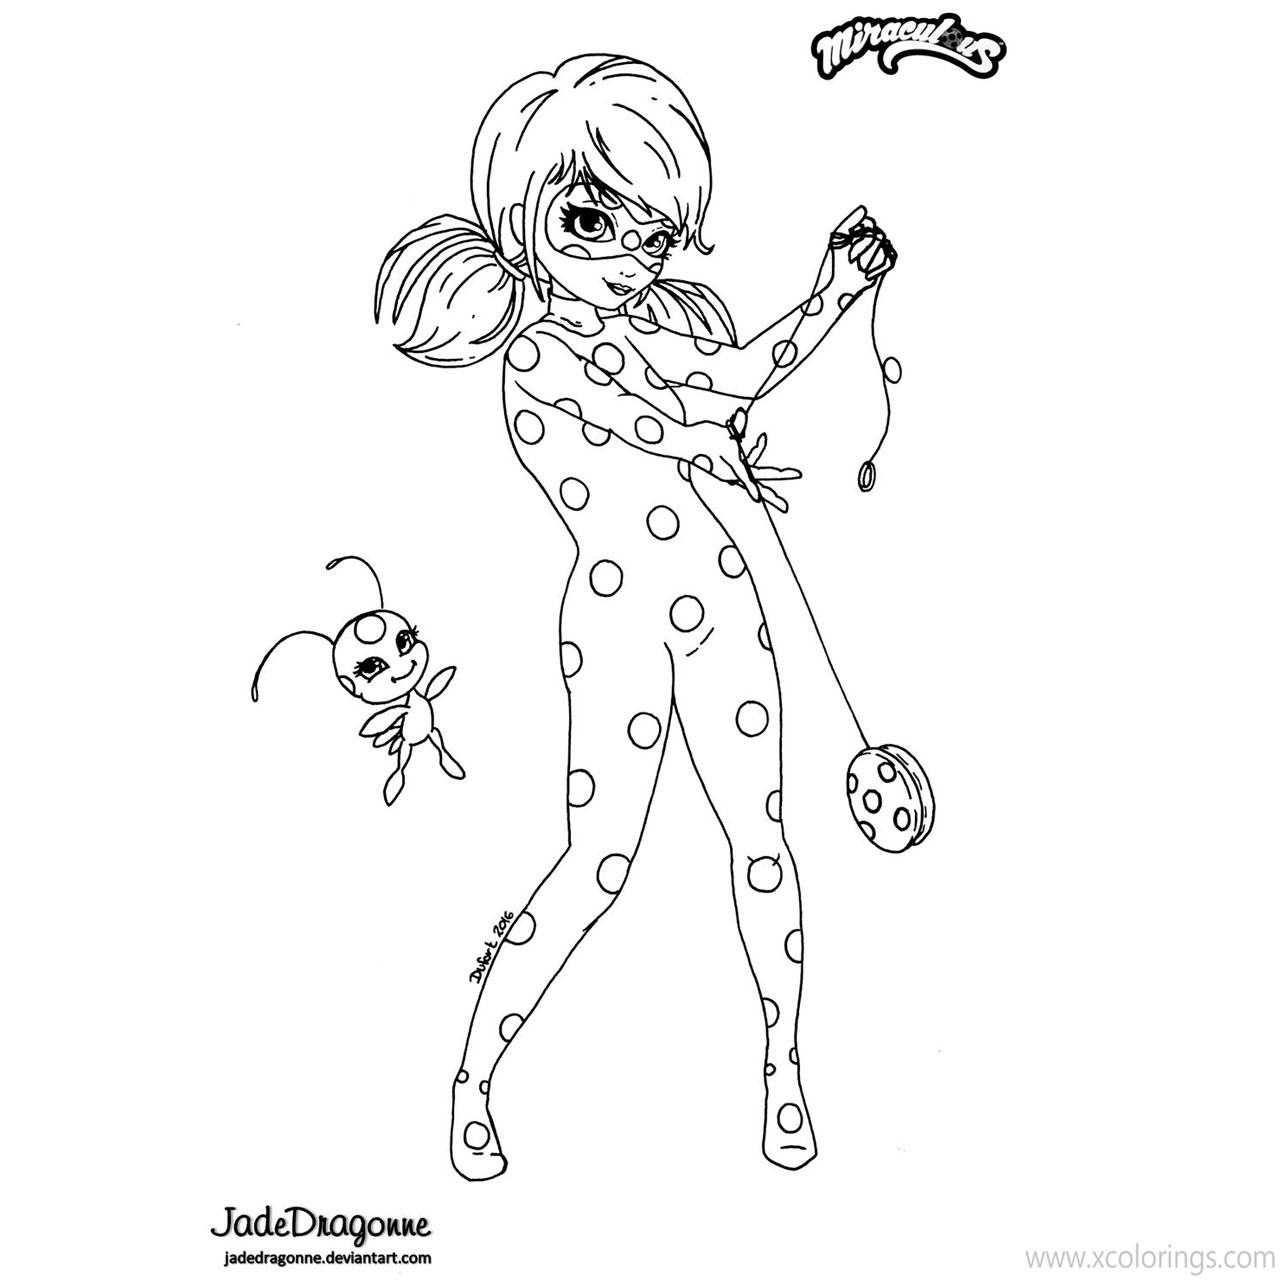 Printable Miraculous Ladybug Coloring Pages Xcolorings Com